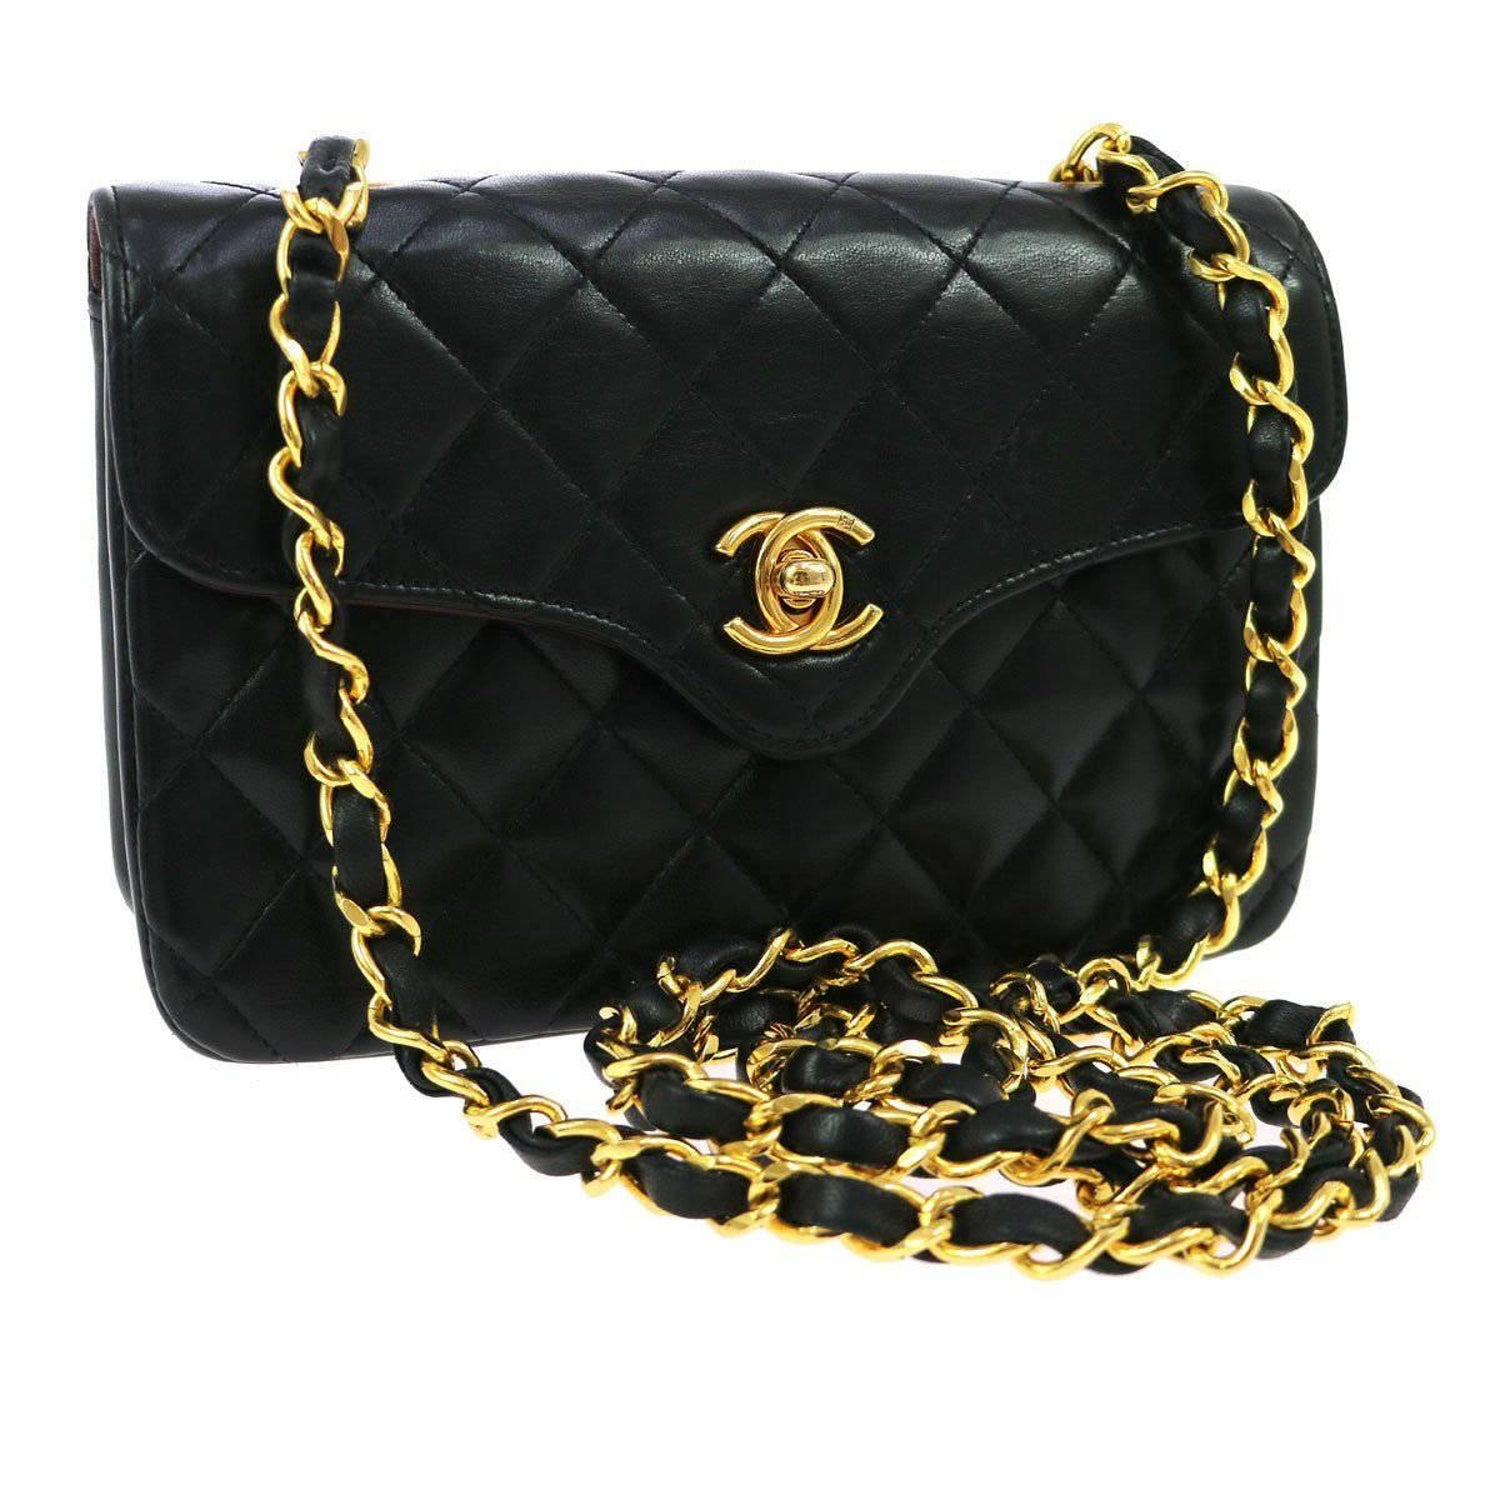 ff536861f813 Chanel Quilted Black Lambskin Leather Gold Small Evening Flap Shoulder Bag  at 1stdibs